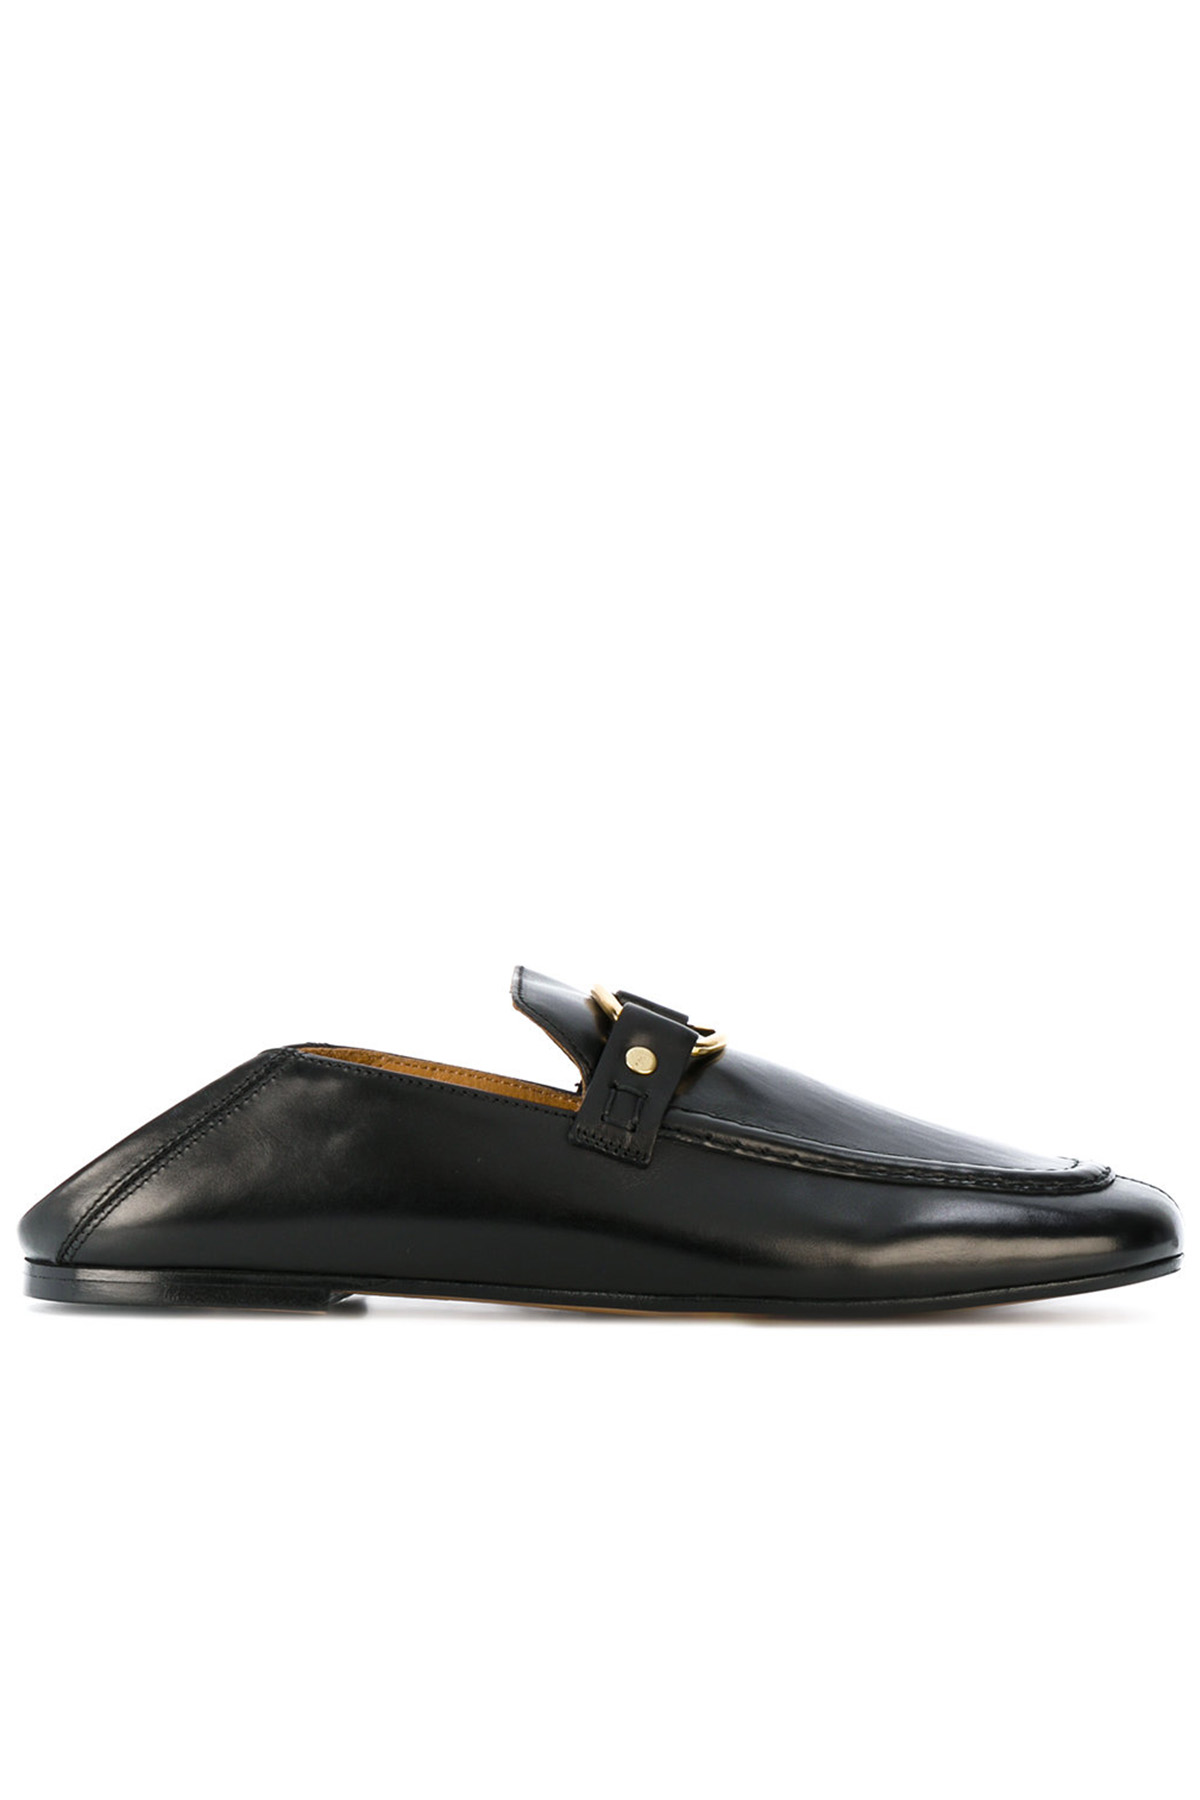 leather and metal buckle slip on loafers